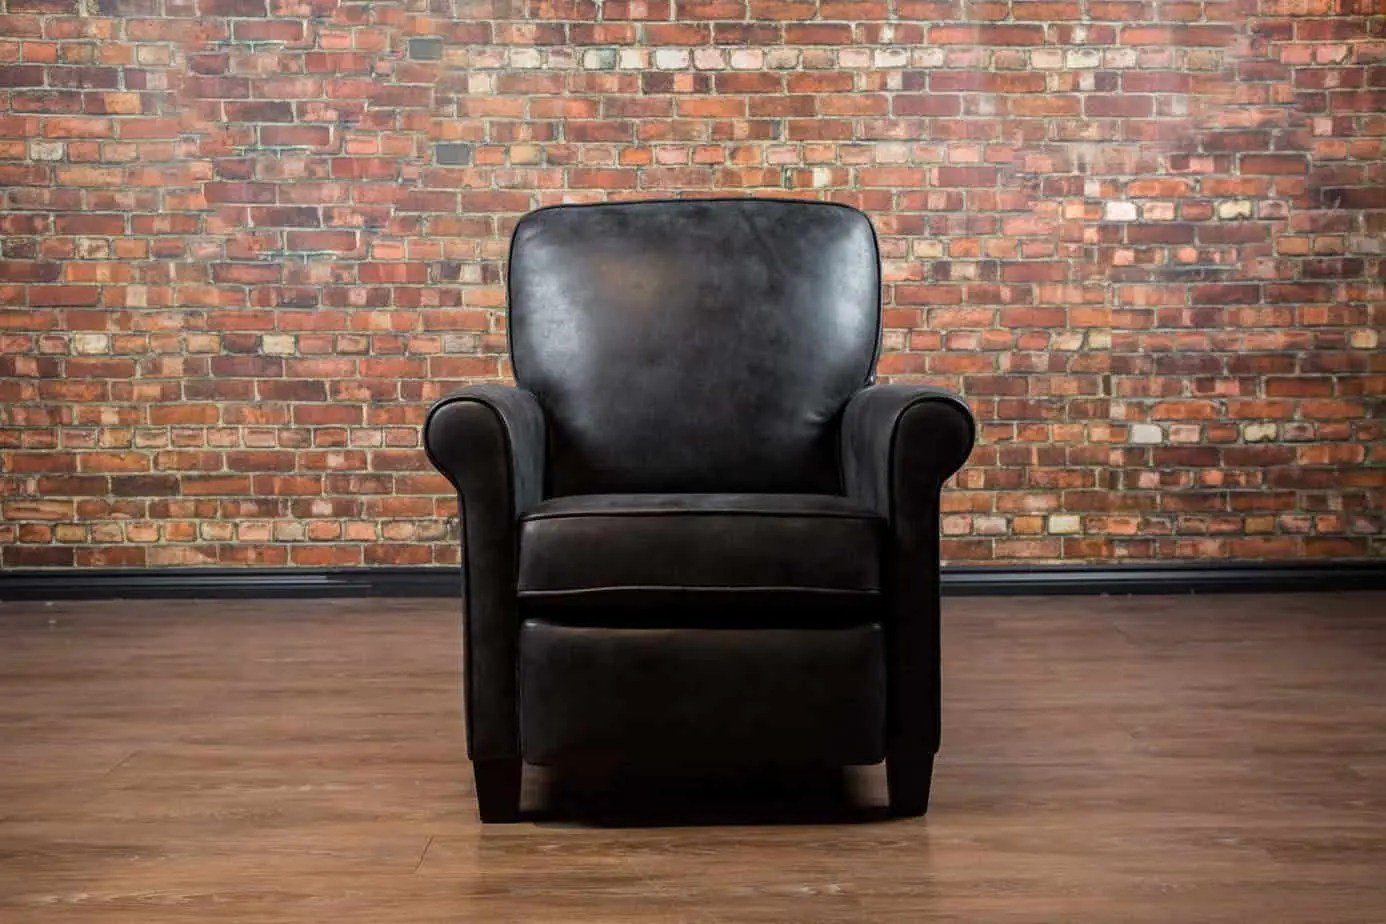 Leather Recliner Chairs Canada The Chicago Leather Reclining Chair Collection Canada 39s